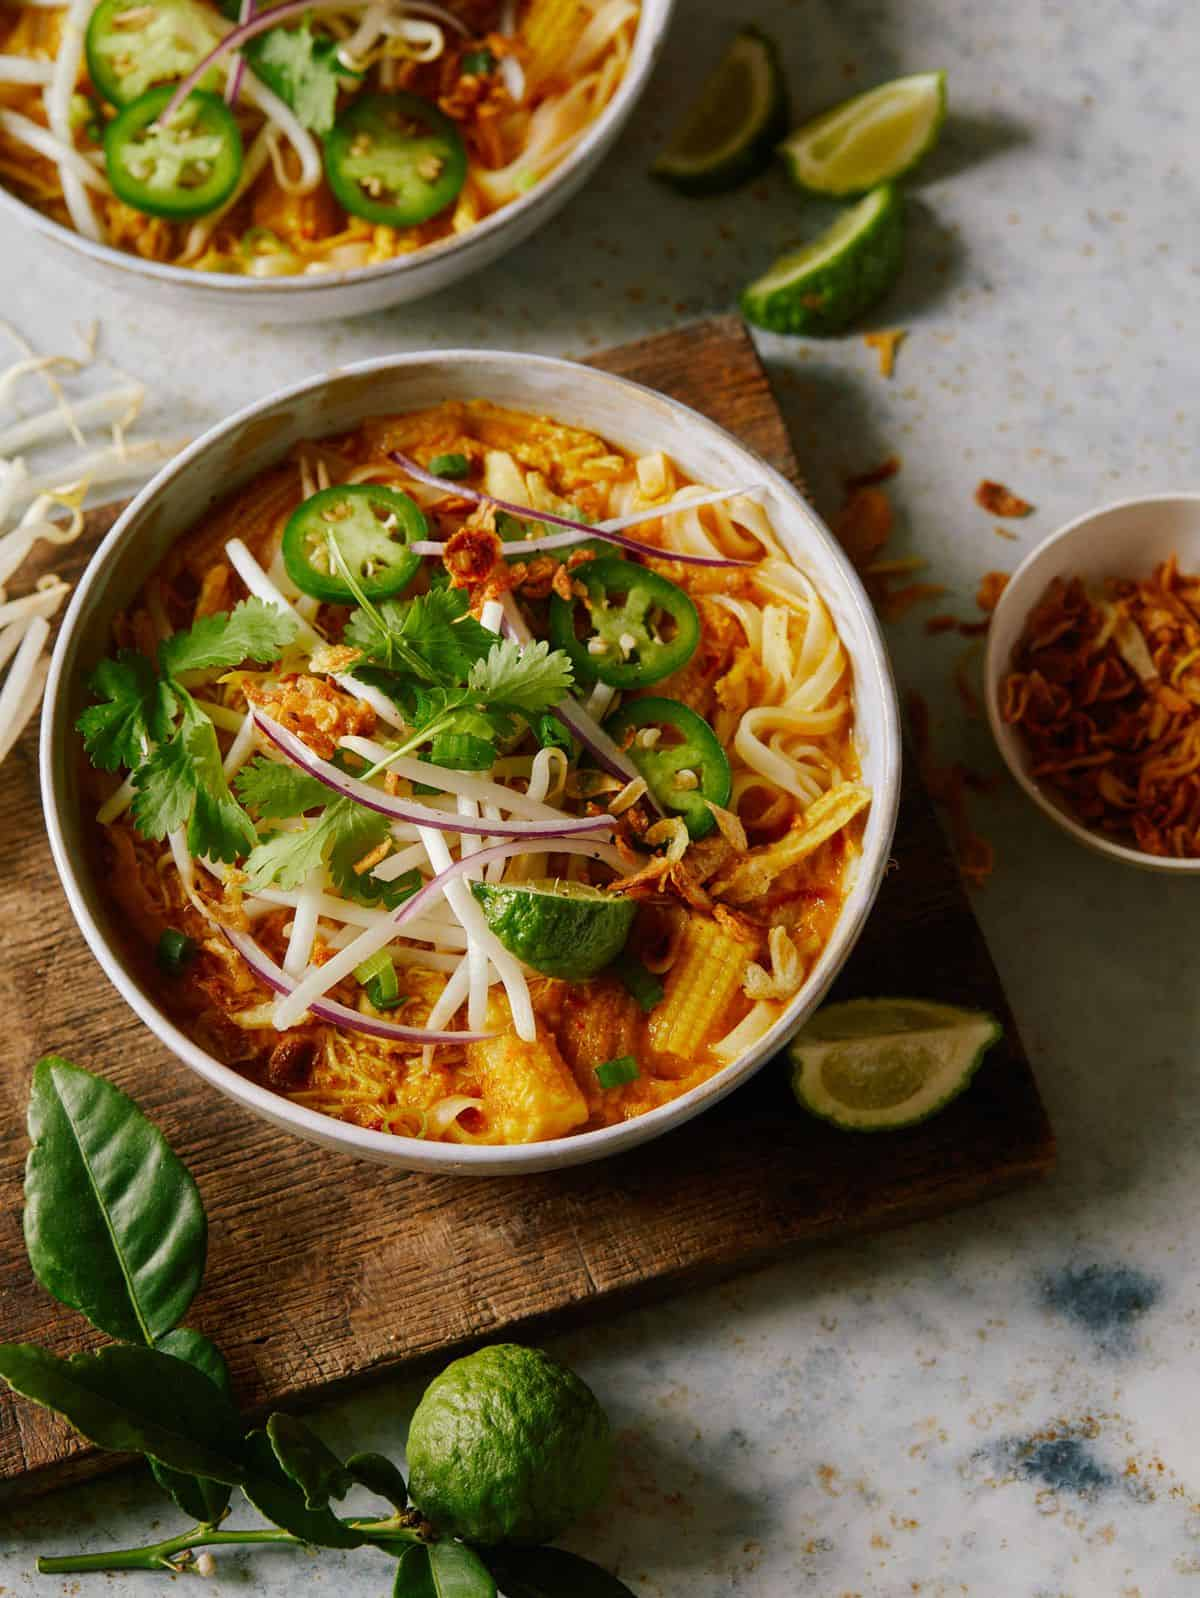 Spicy chicken laksa in a bowl garnished with jalapeños, red onion, and cilantro.